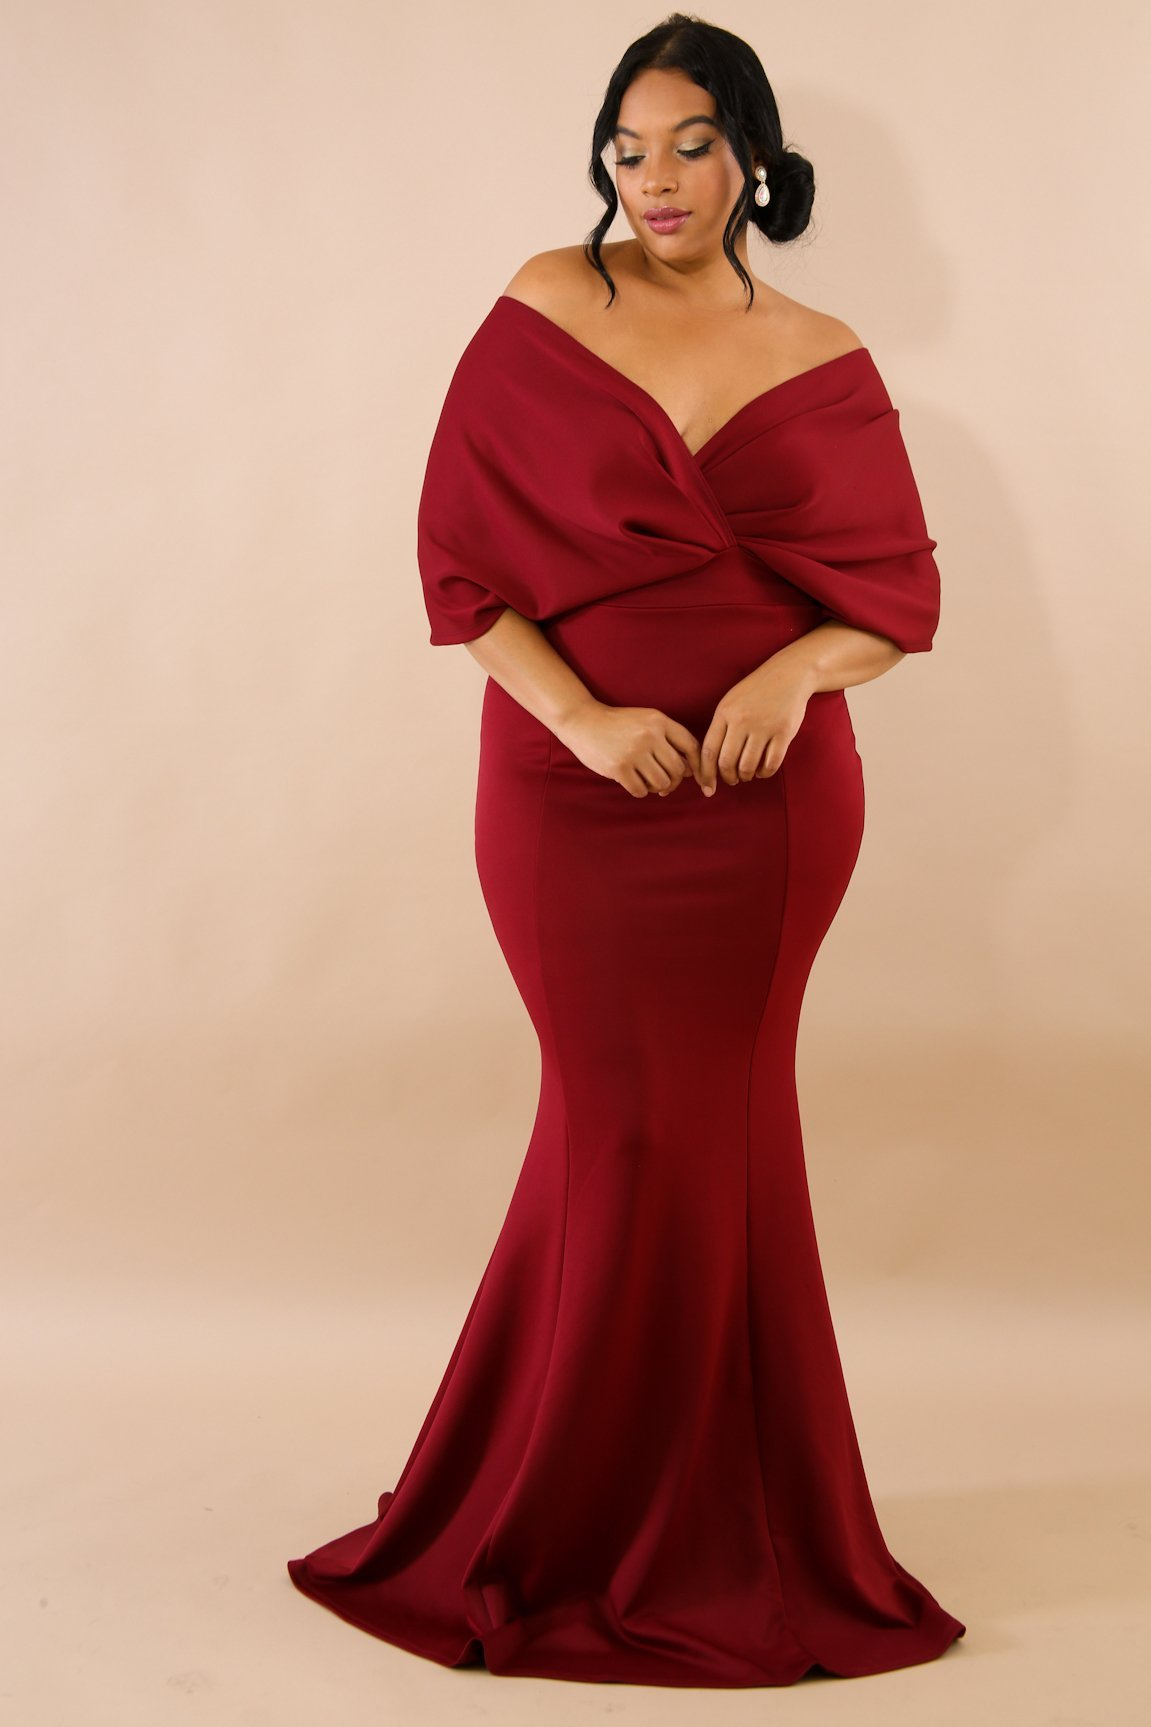 Glamorous Womens Belted Off The Shoulder Maxi Dress